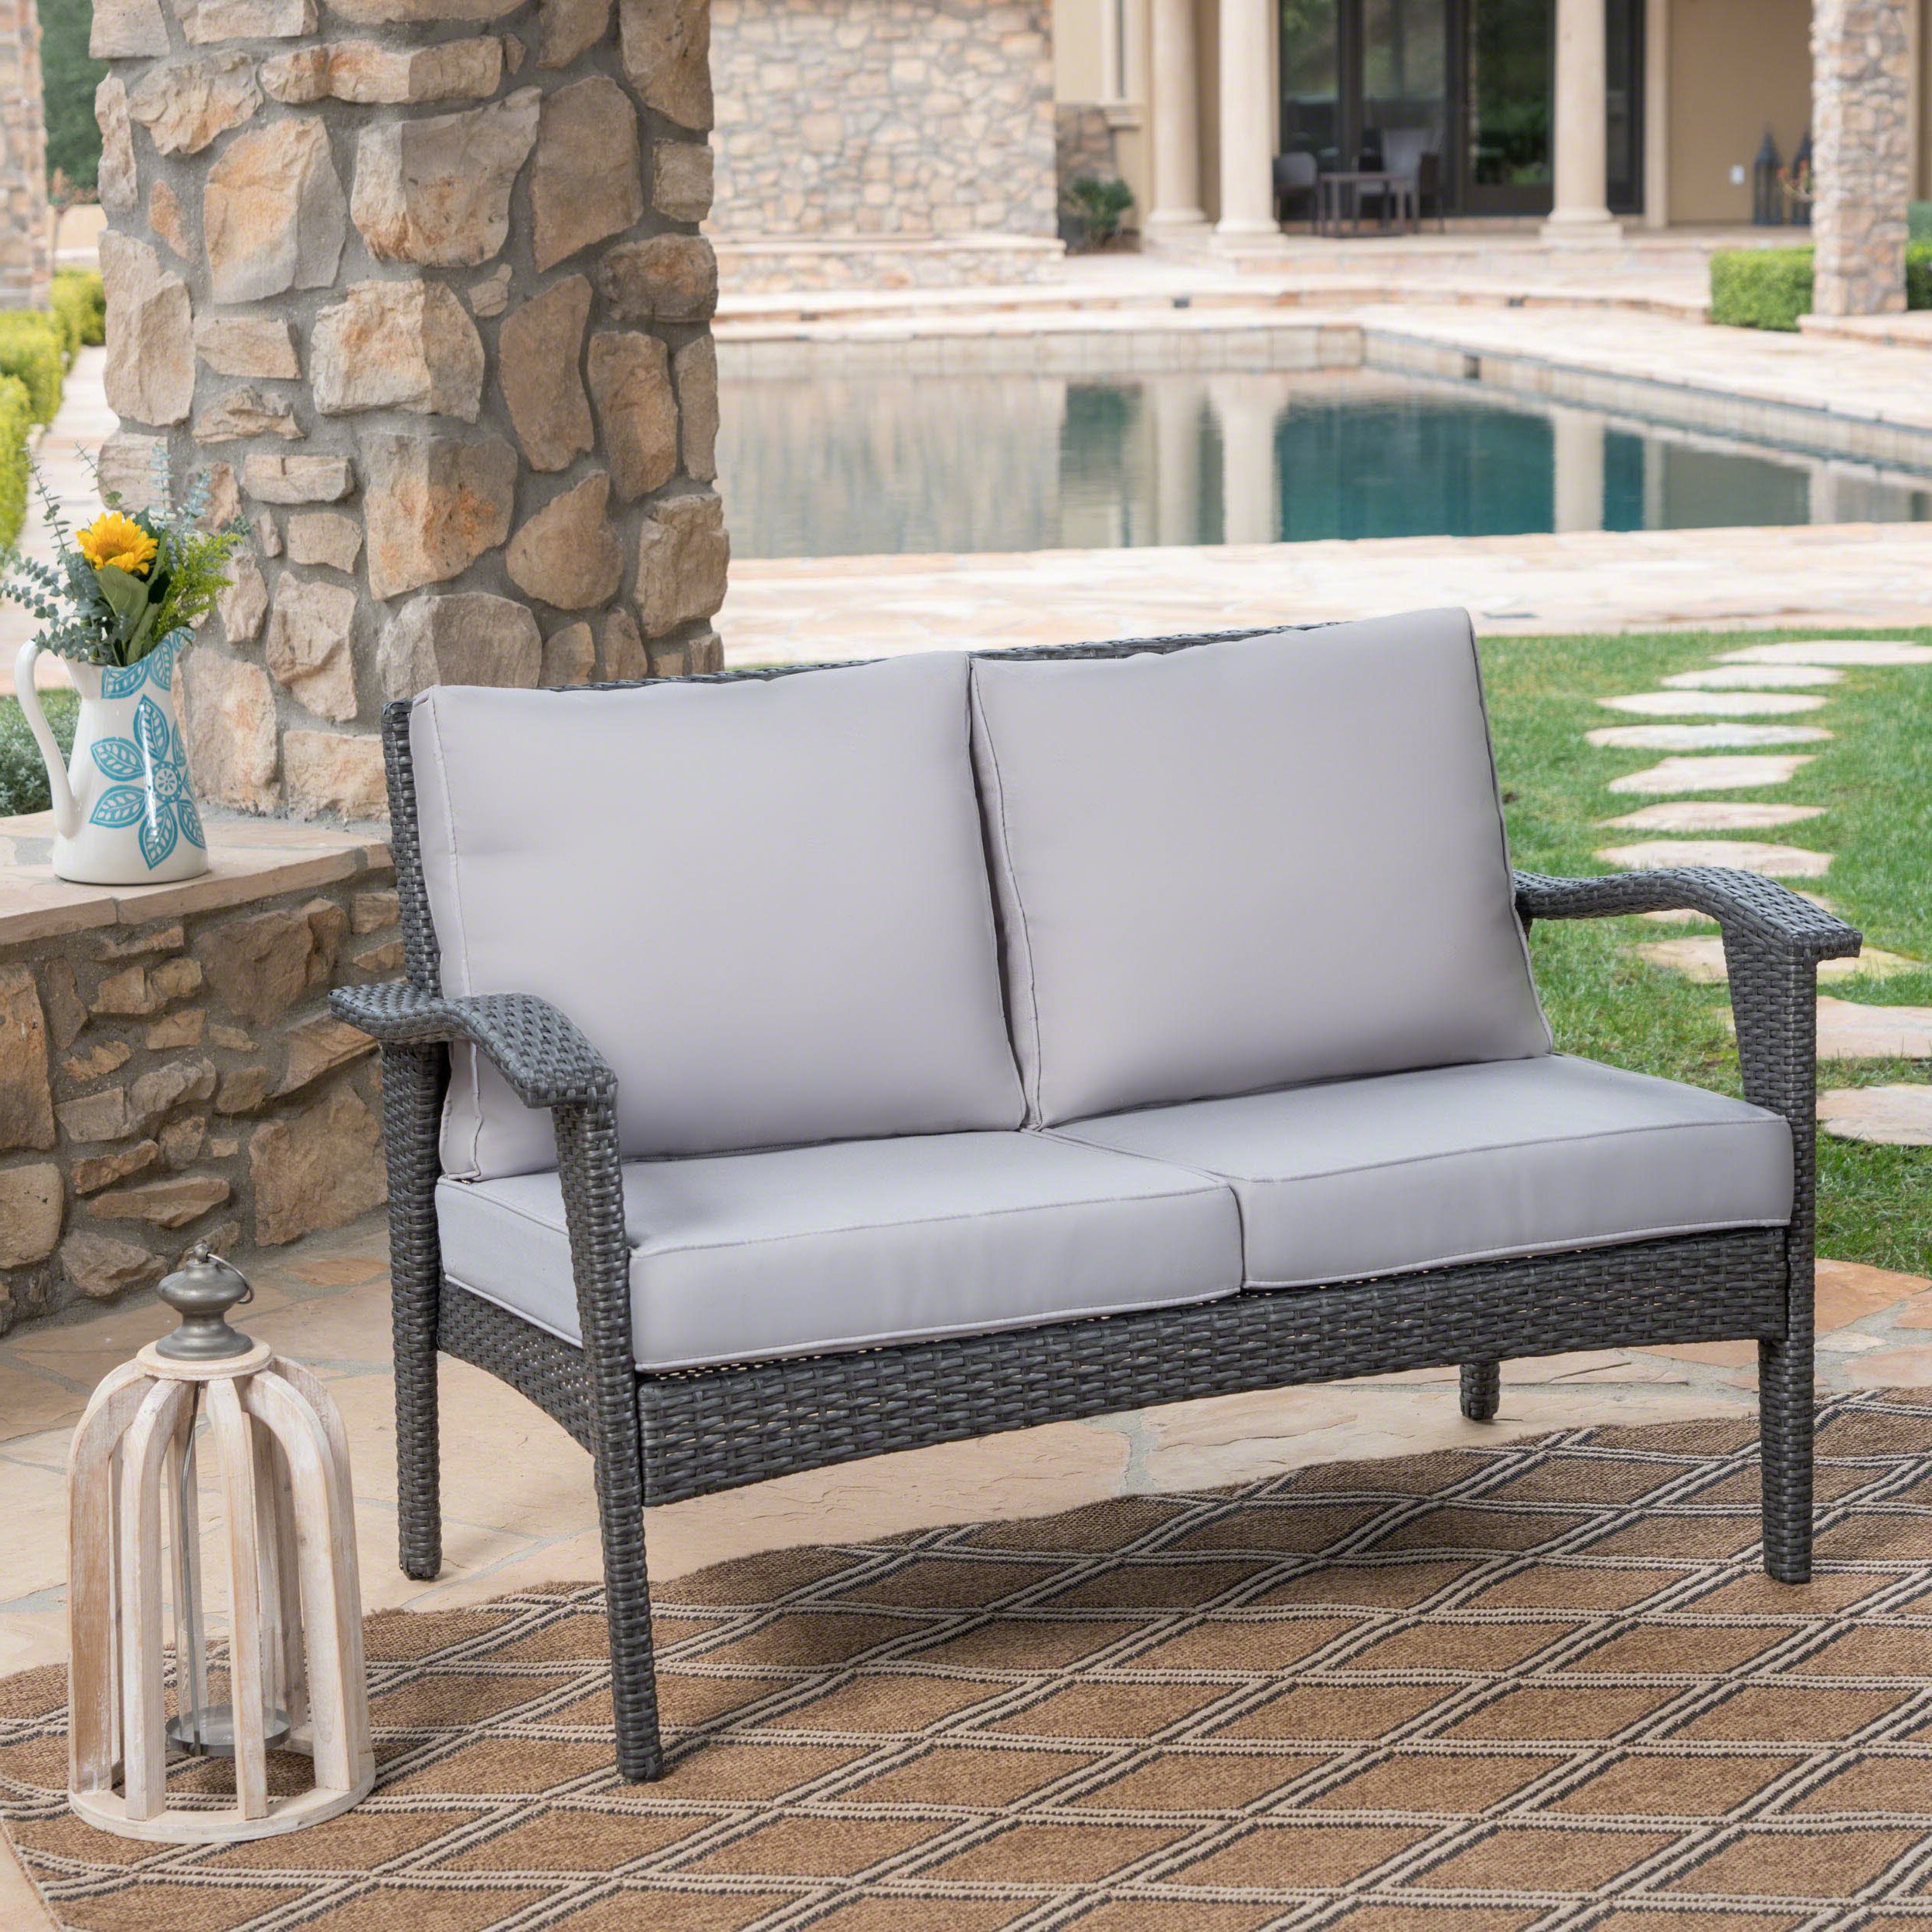 Alburg Loveseats With Cushions With Well Known Hagler Outdoor Loveseat With Cushions (View 20 of 25)